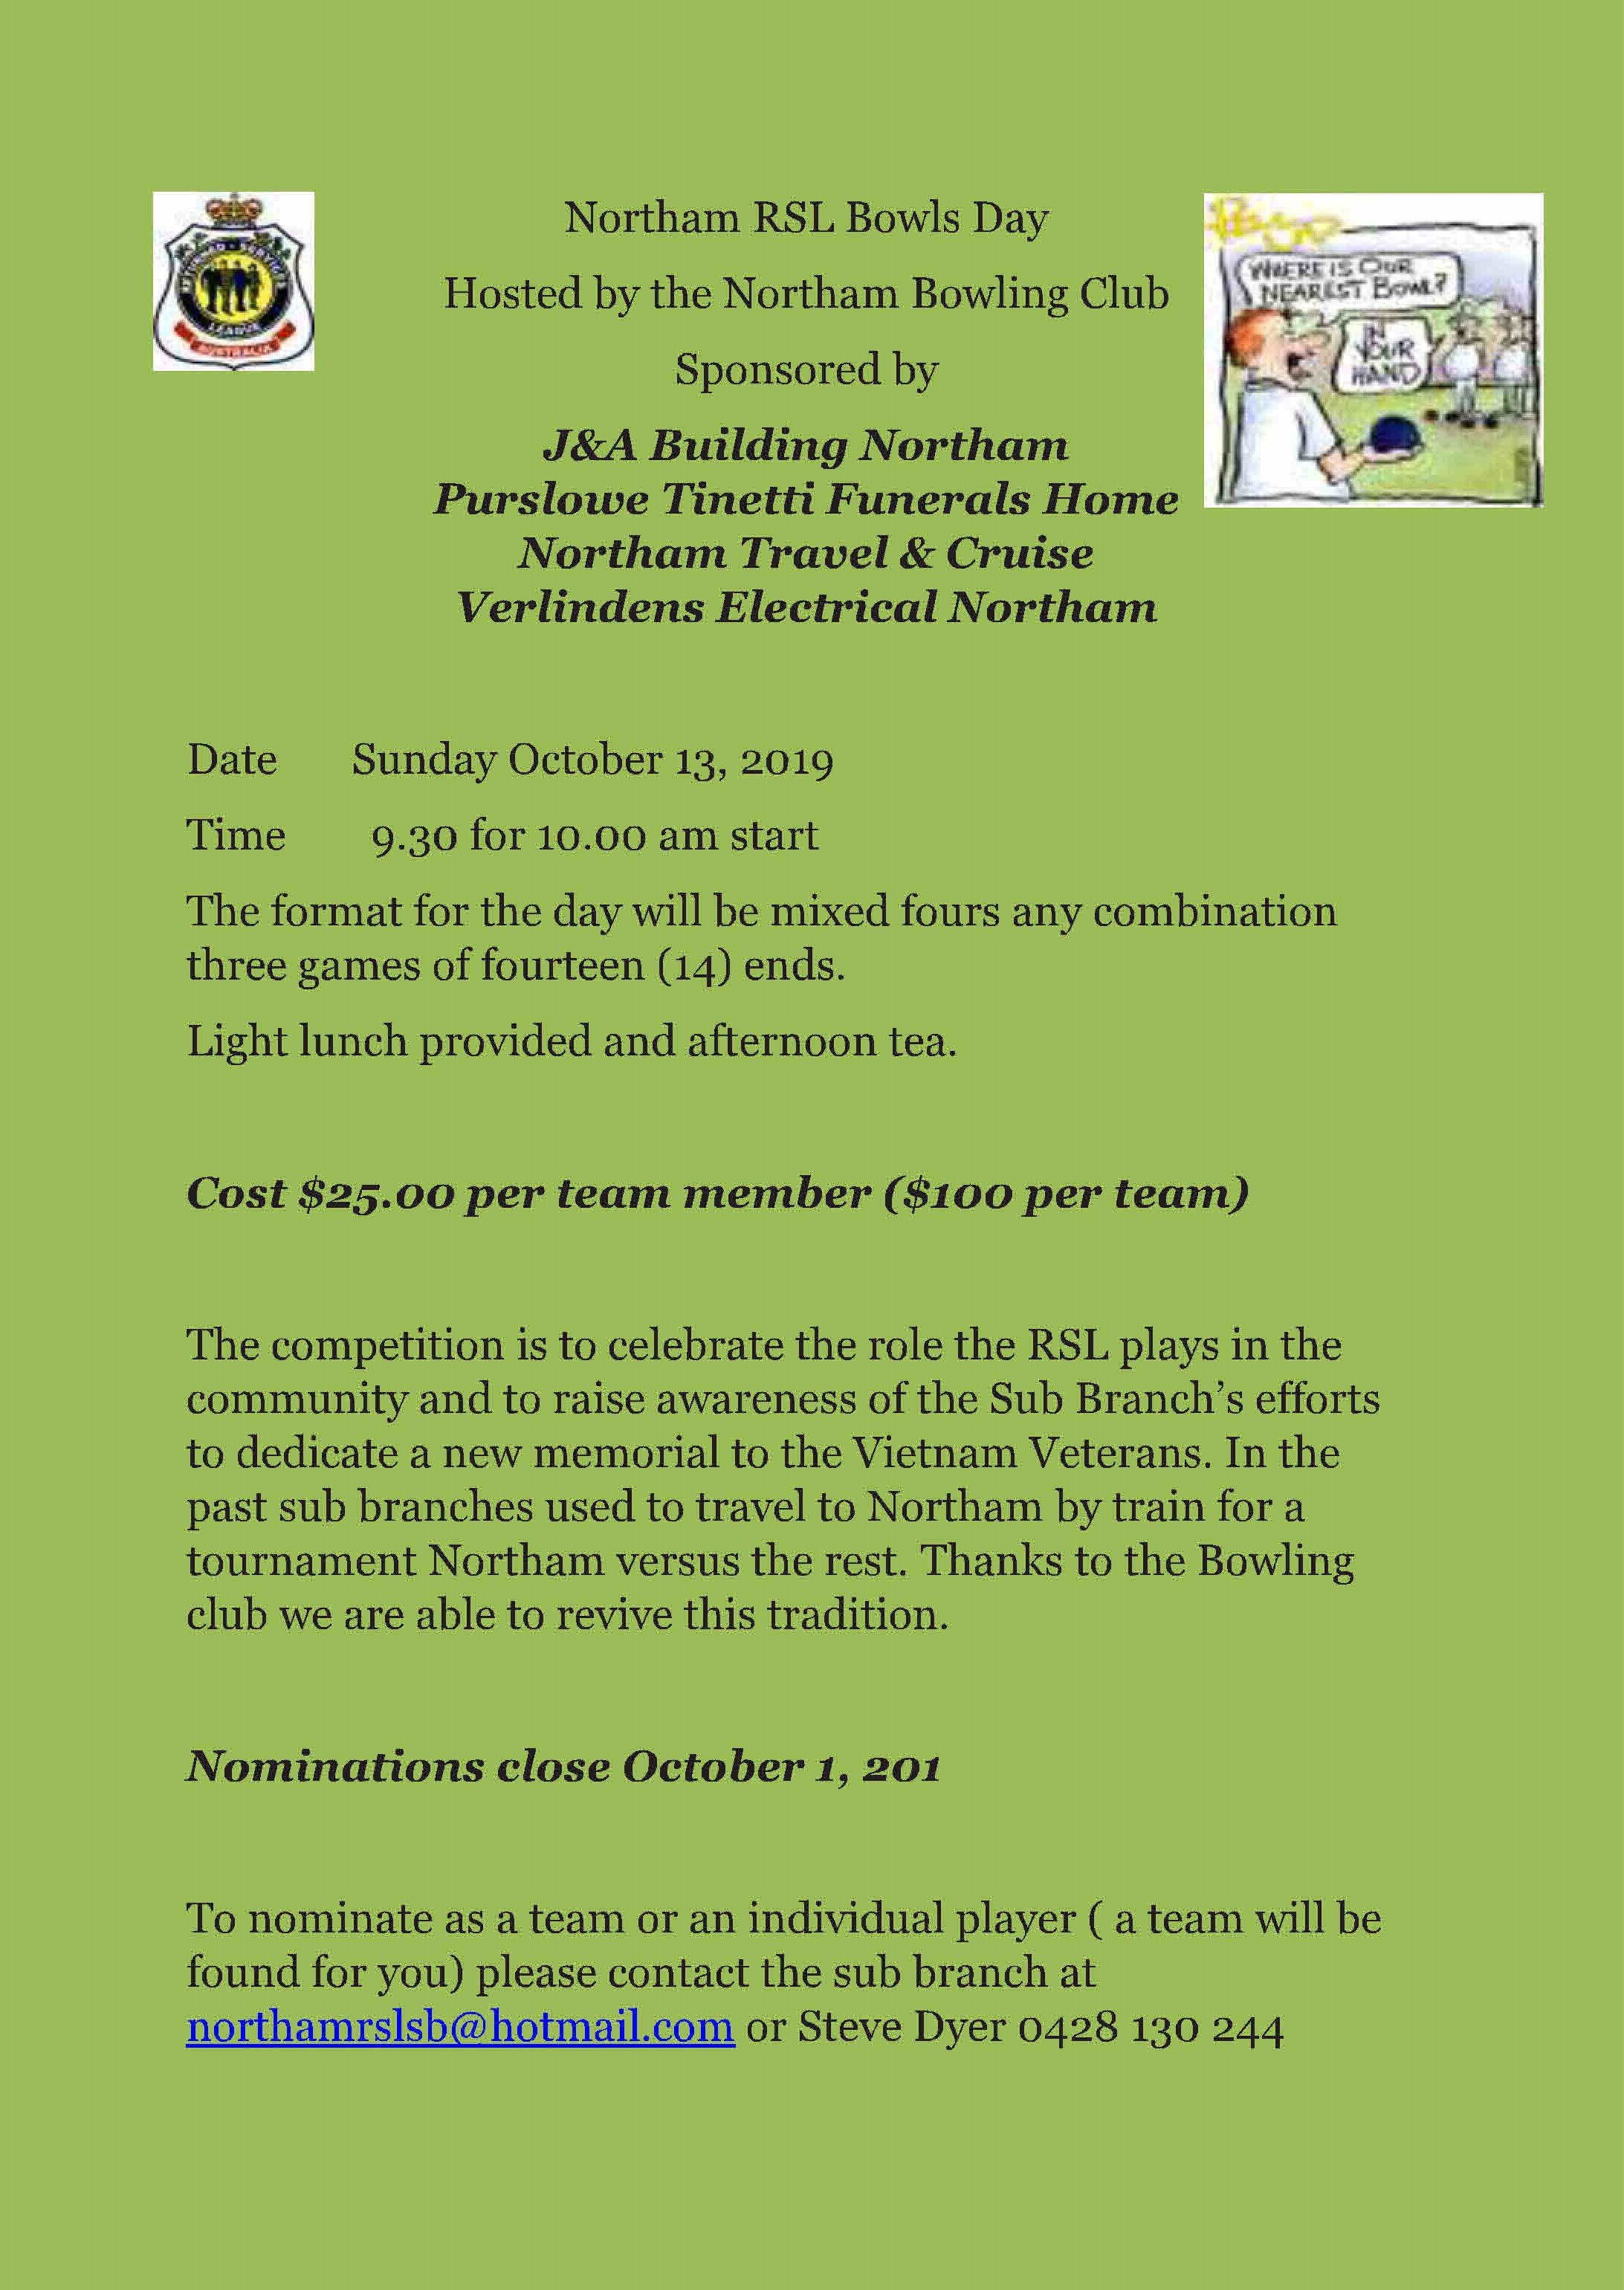 Details of the Northam RSL Bowls Day Sunday October 13 2019.  Nominations close October 1